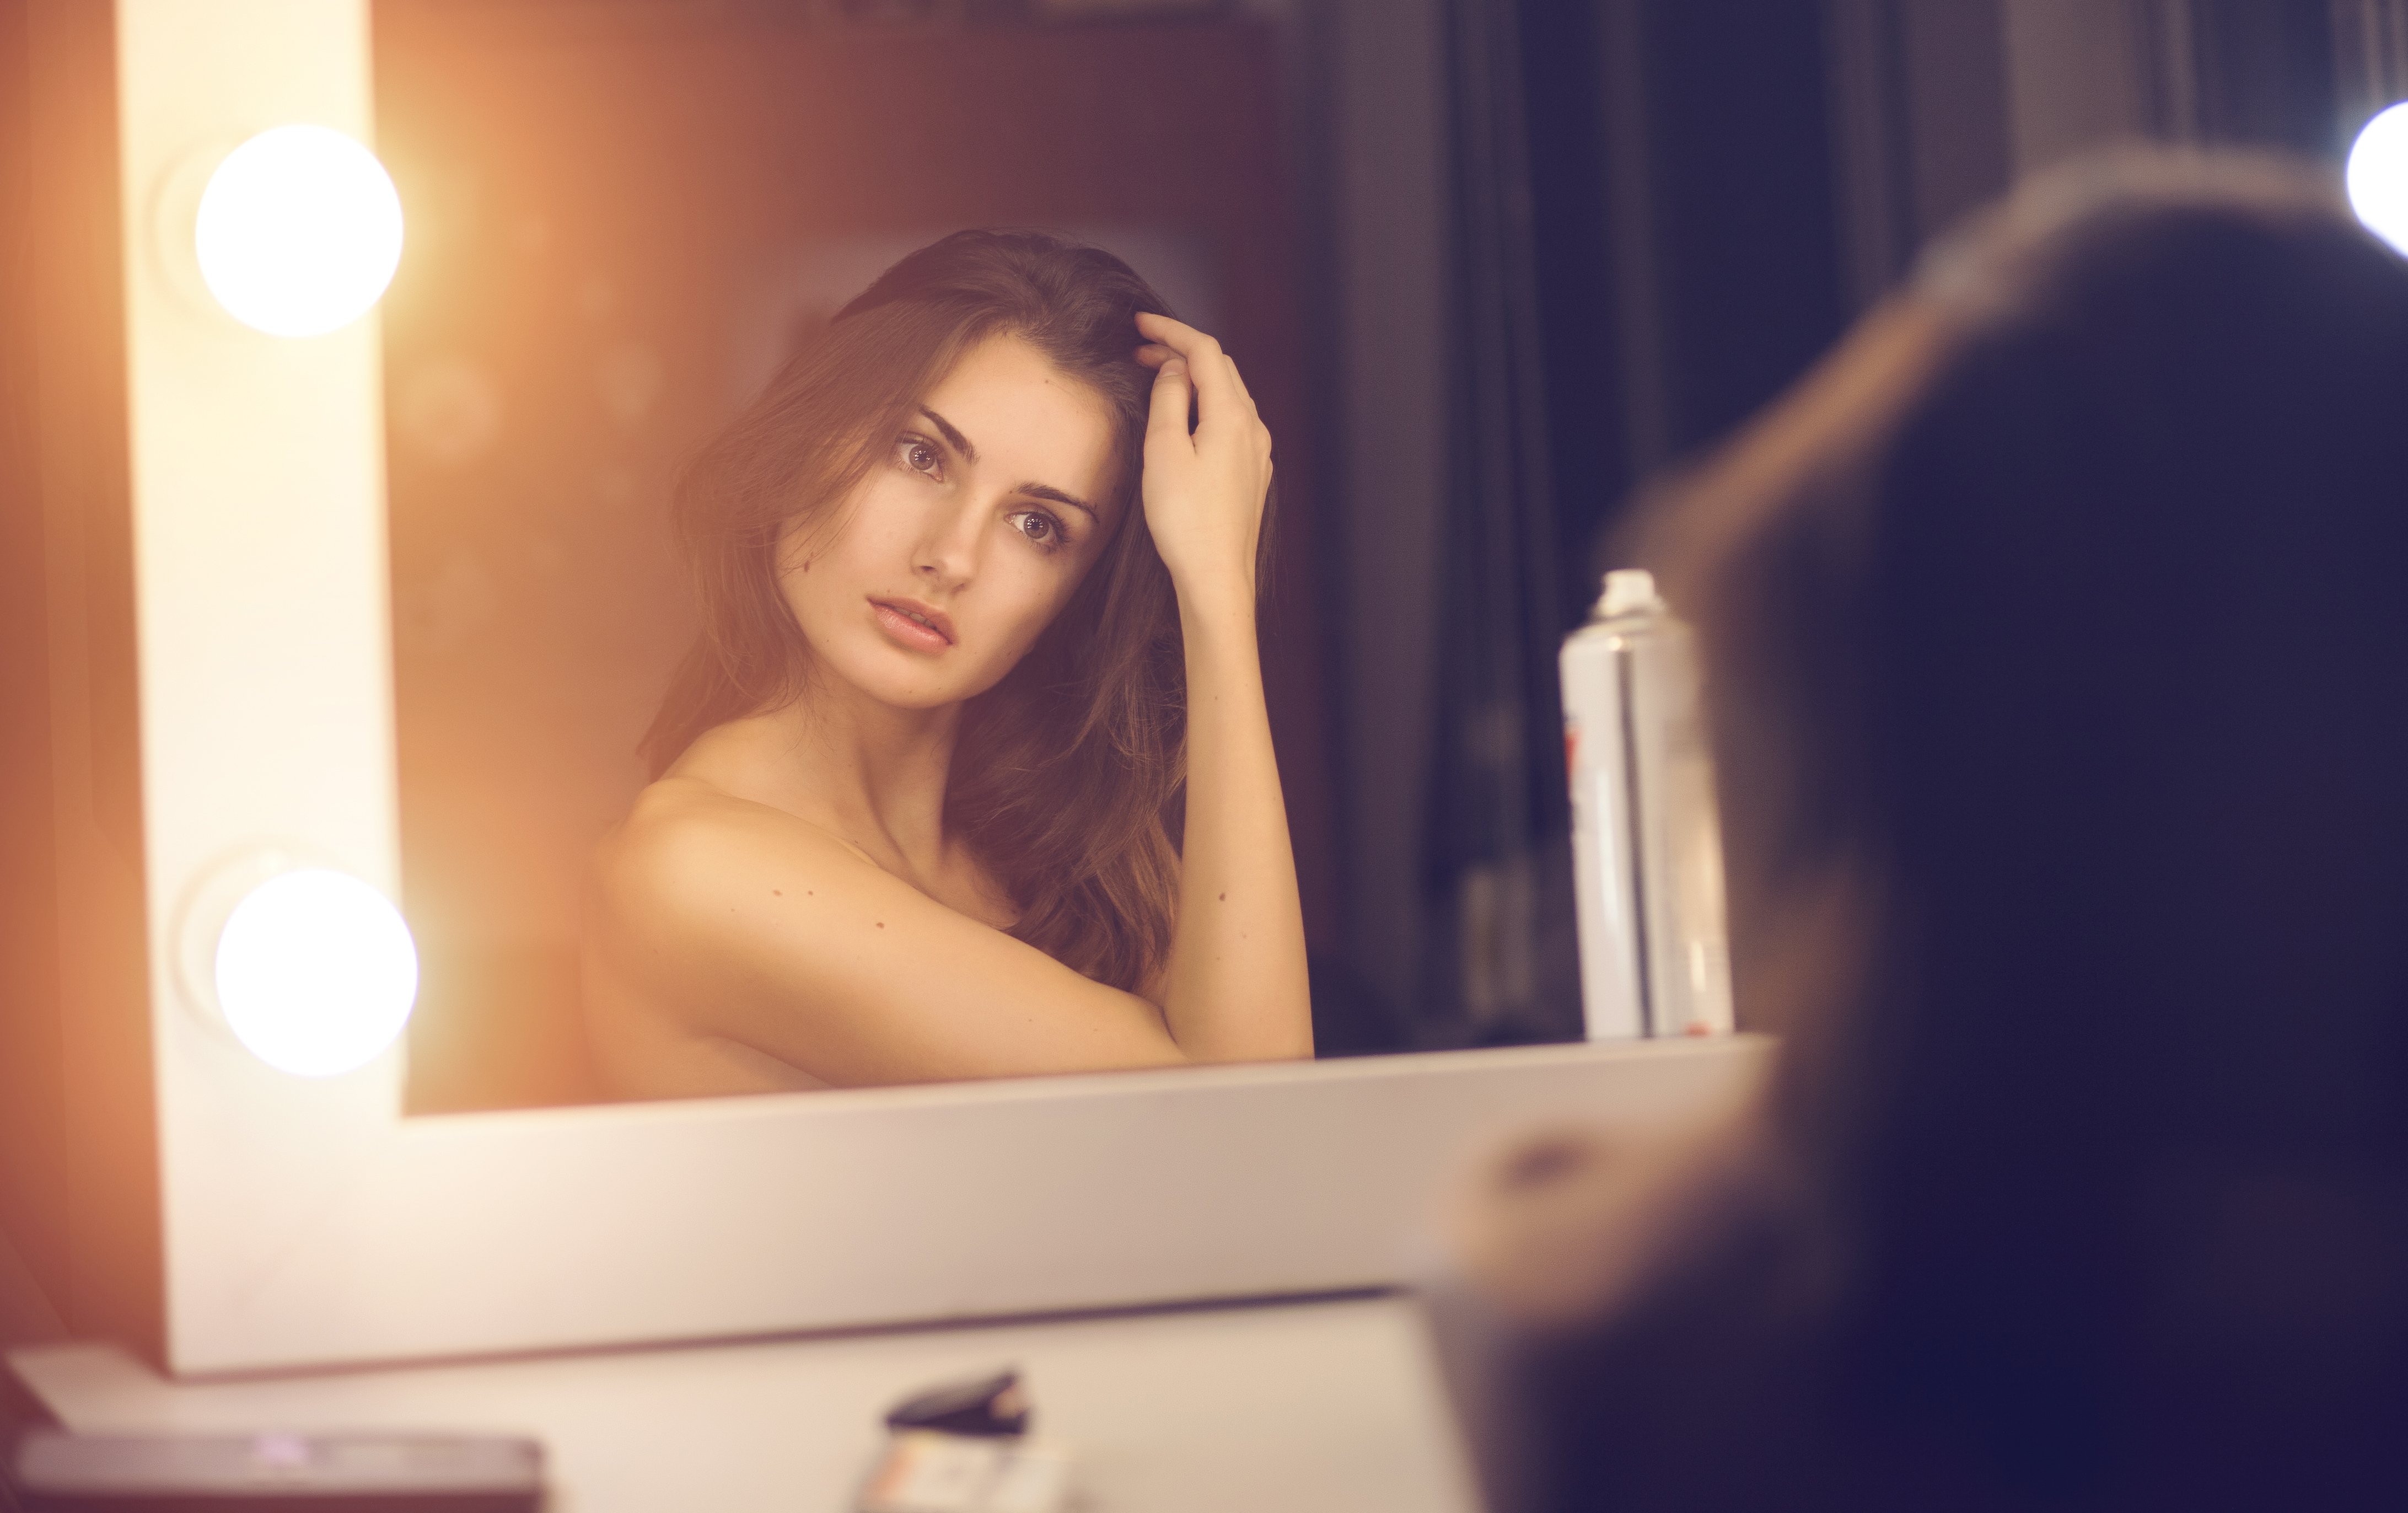 Dying To Be Thin: The Danger in Beauty Standards - One Equal World